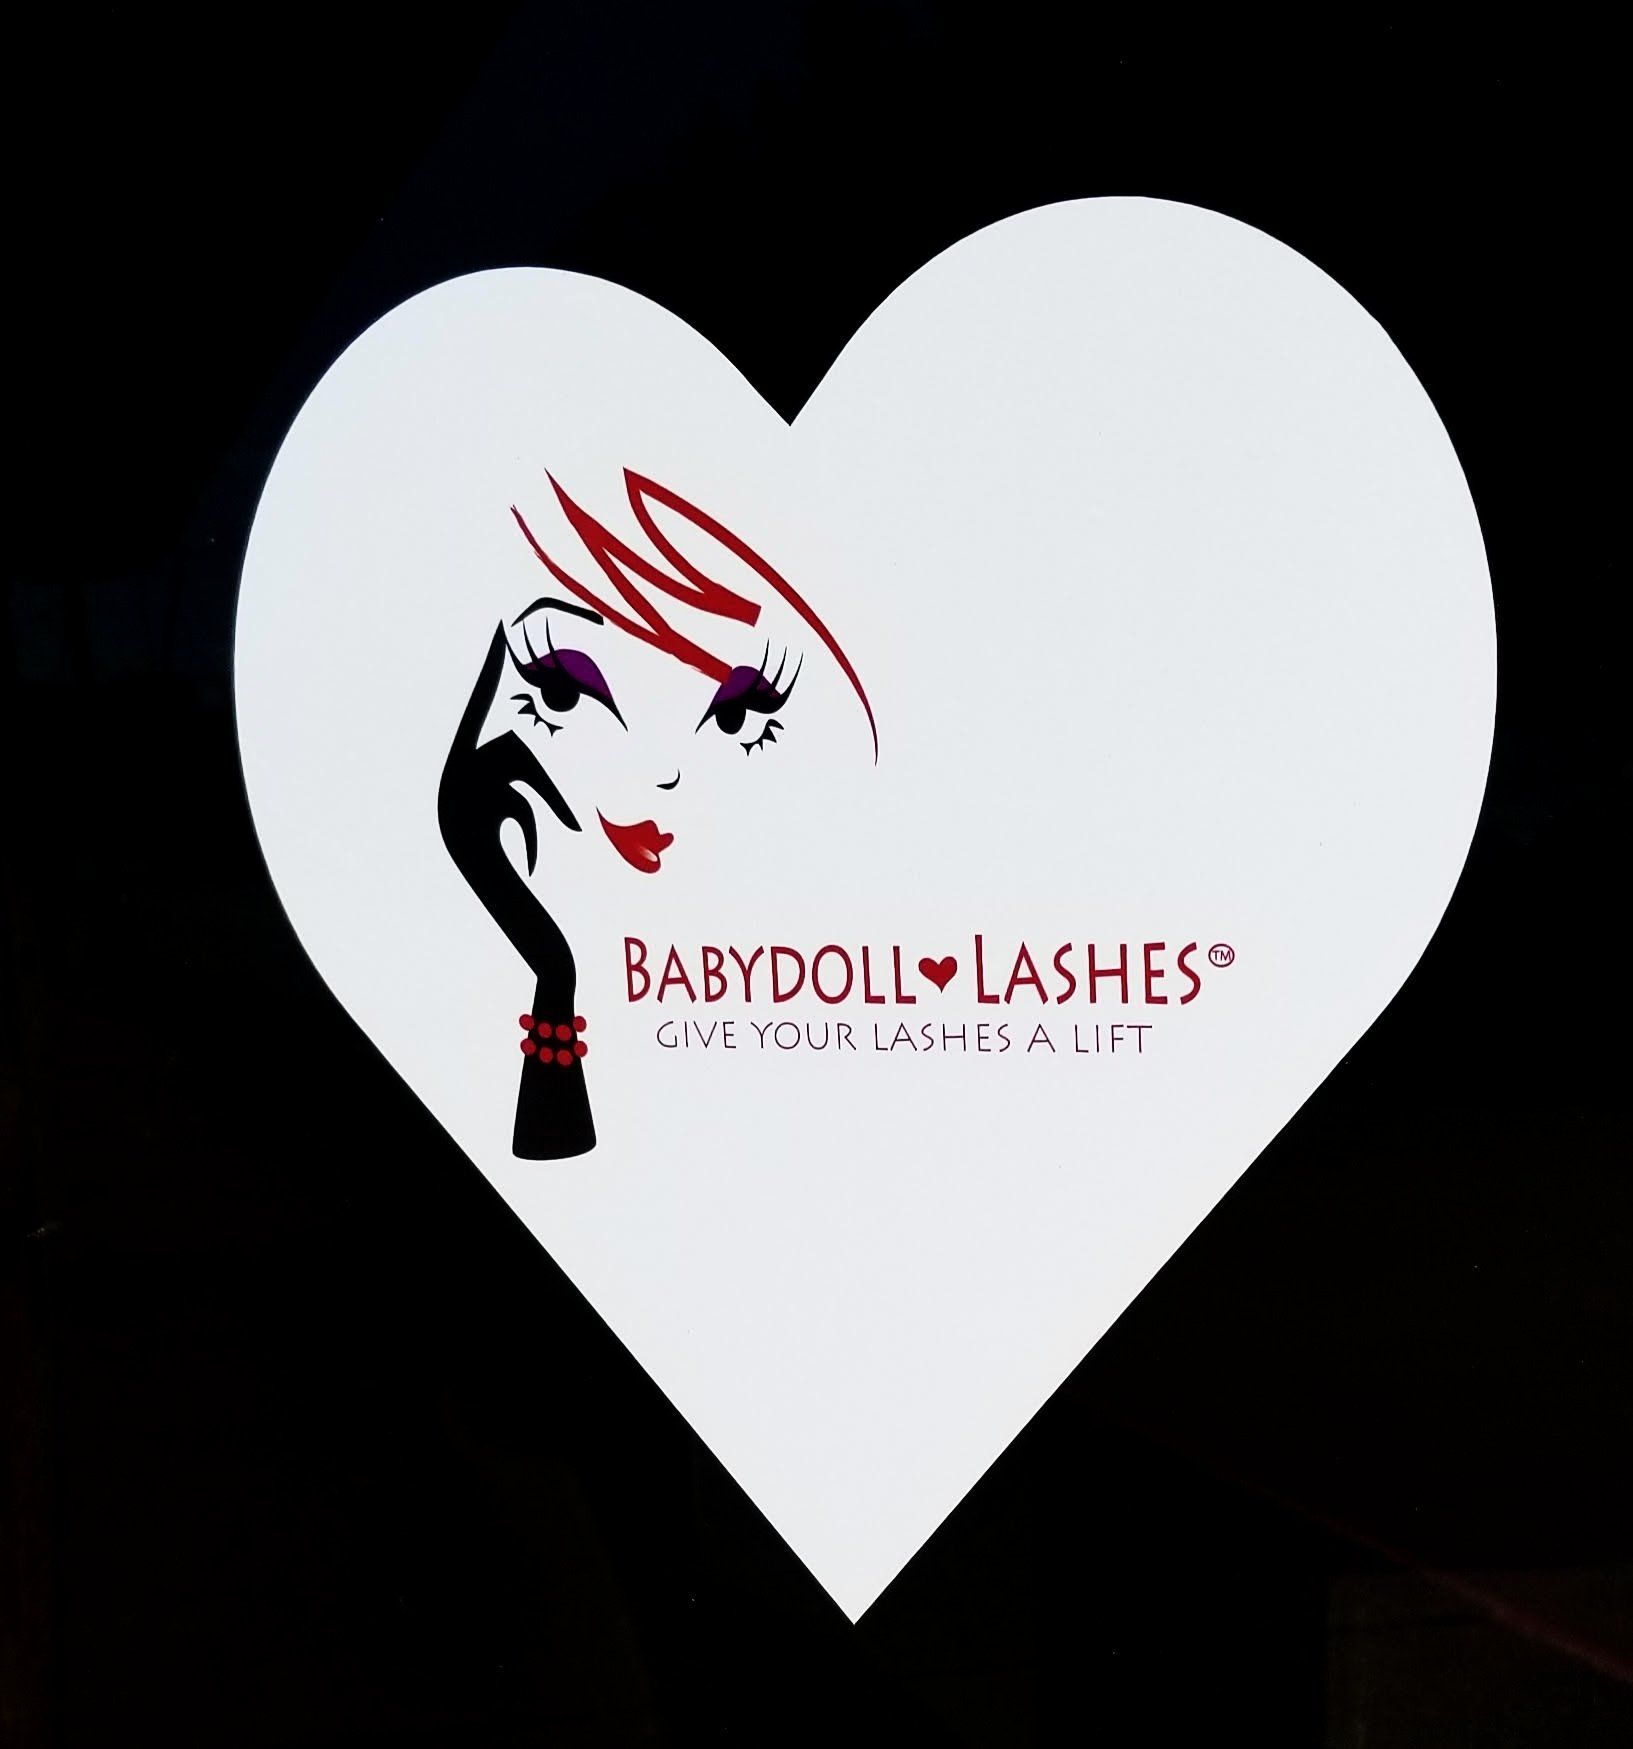 Babydoll Lashes Lash Lift Window Cling [product_price] Real Eyez Beauty